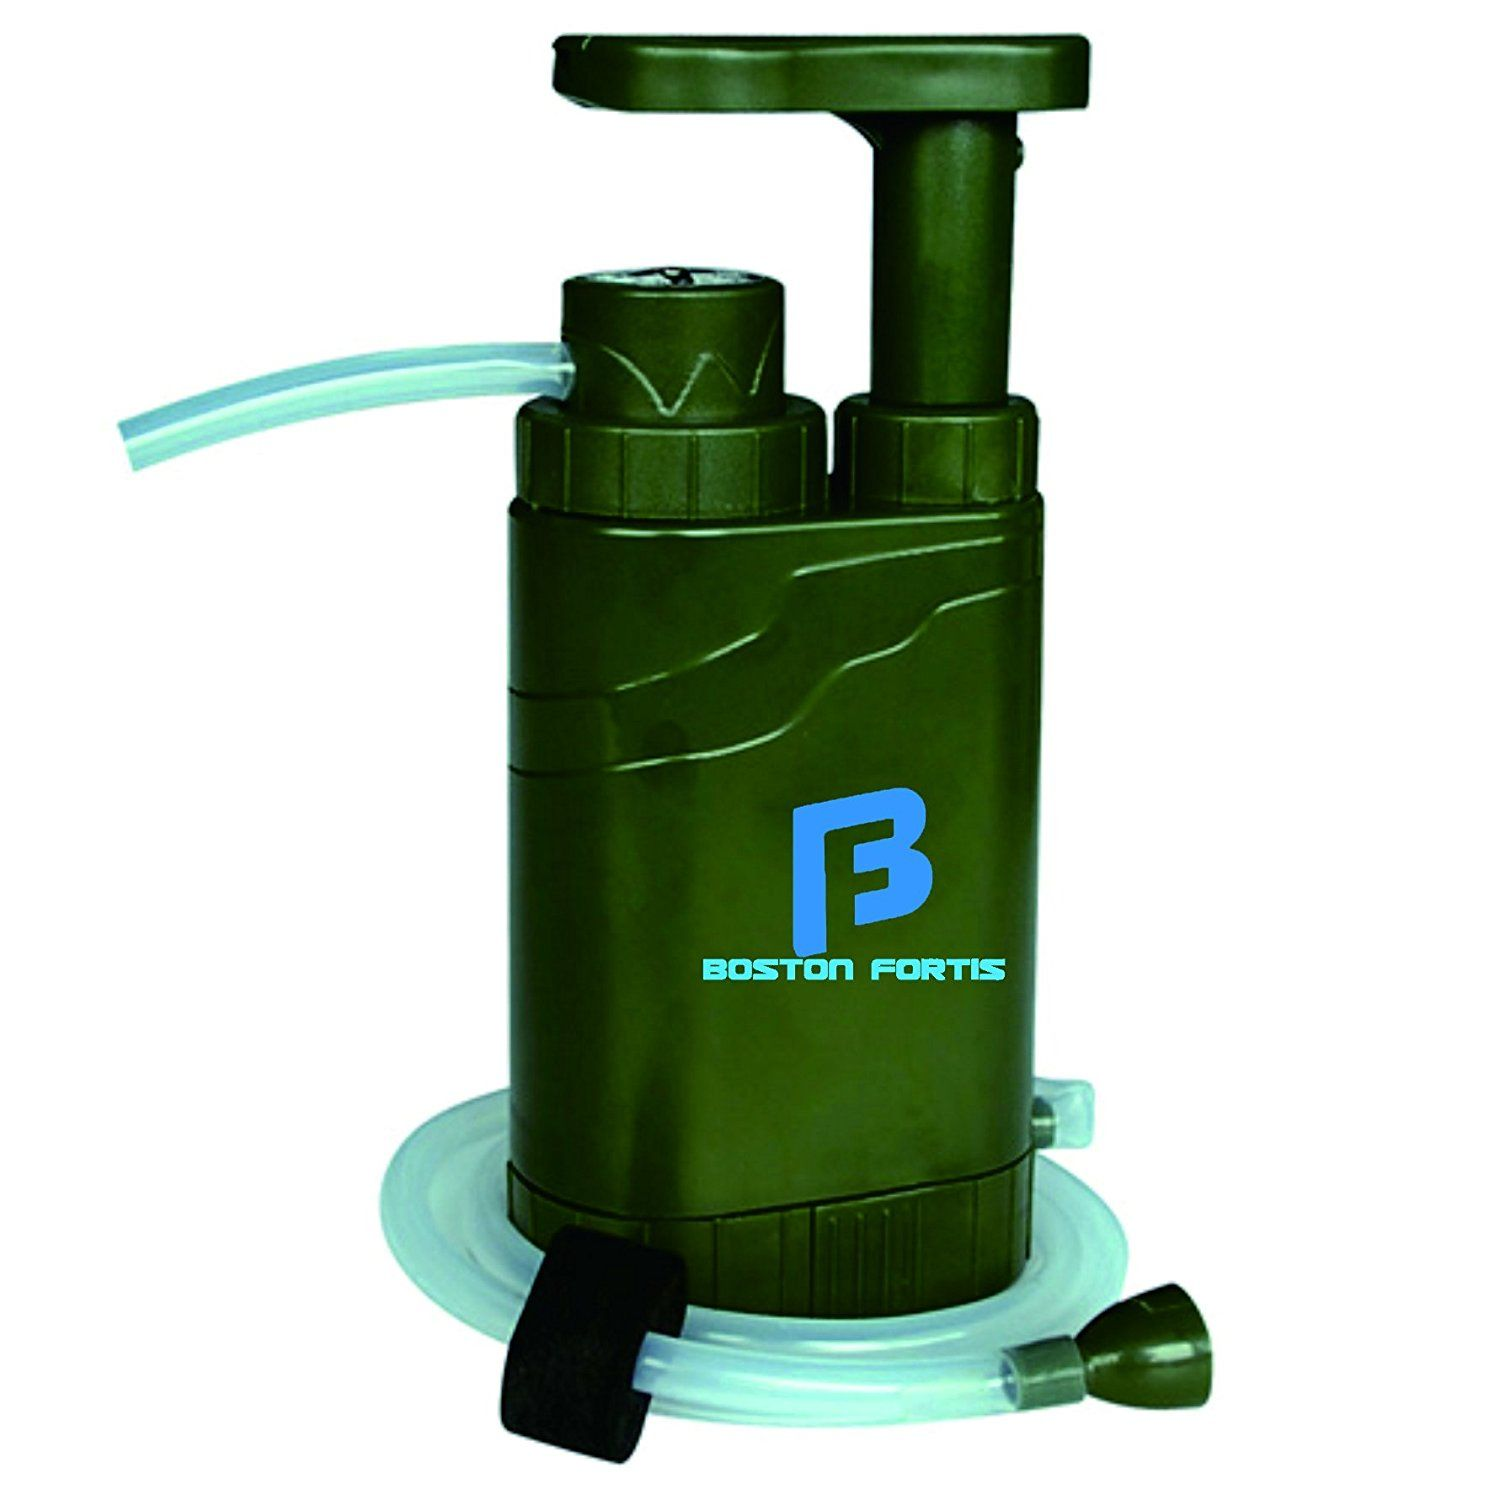 Portable Water Filter Emergency Personal Hiking Camping Survival Water Purifier